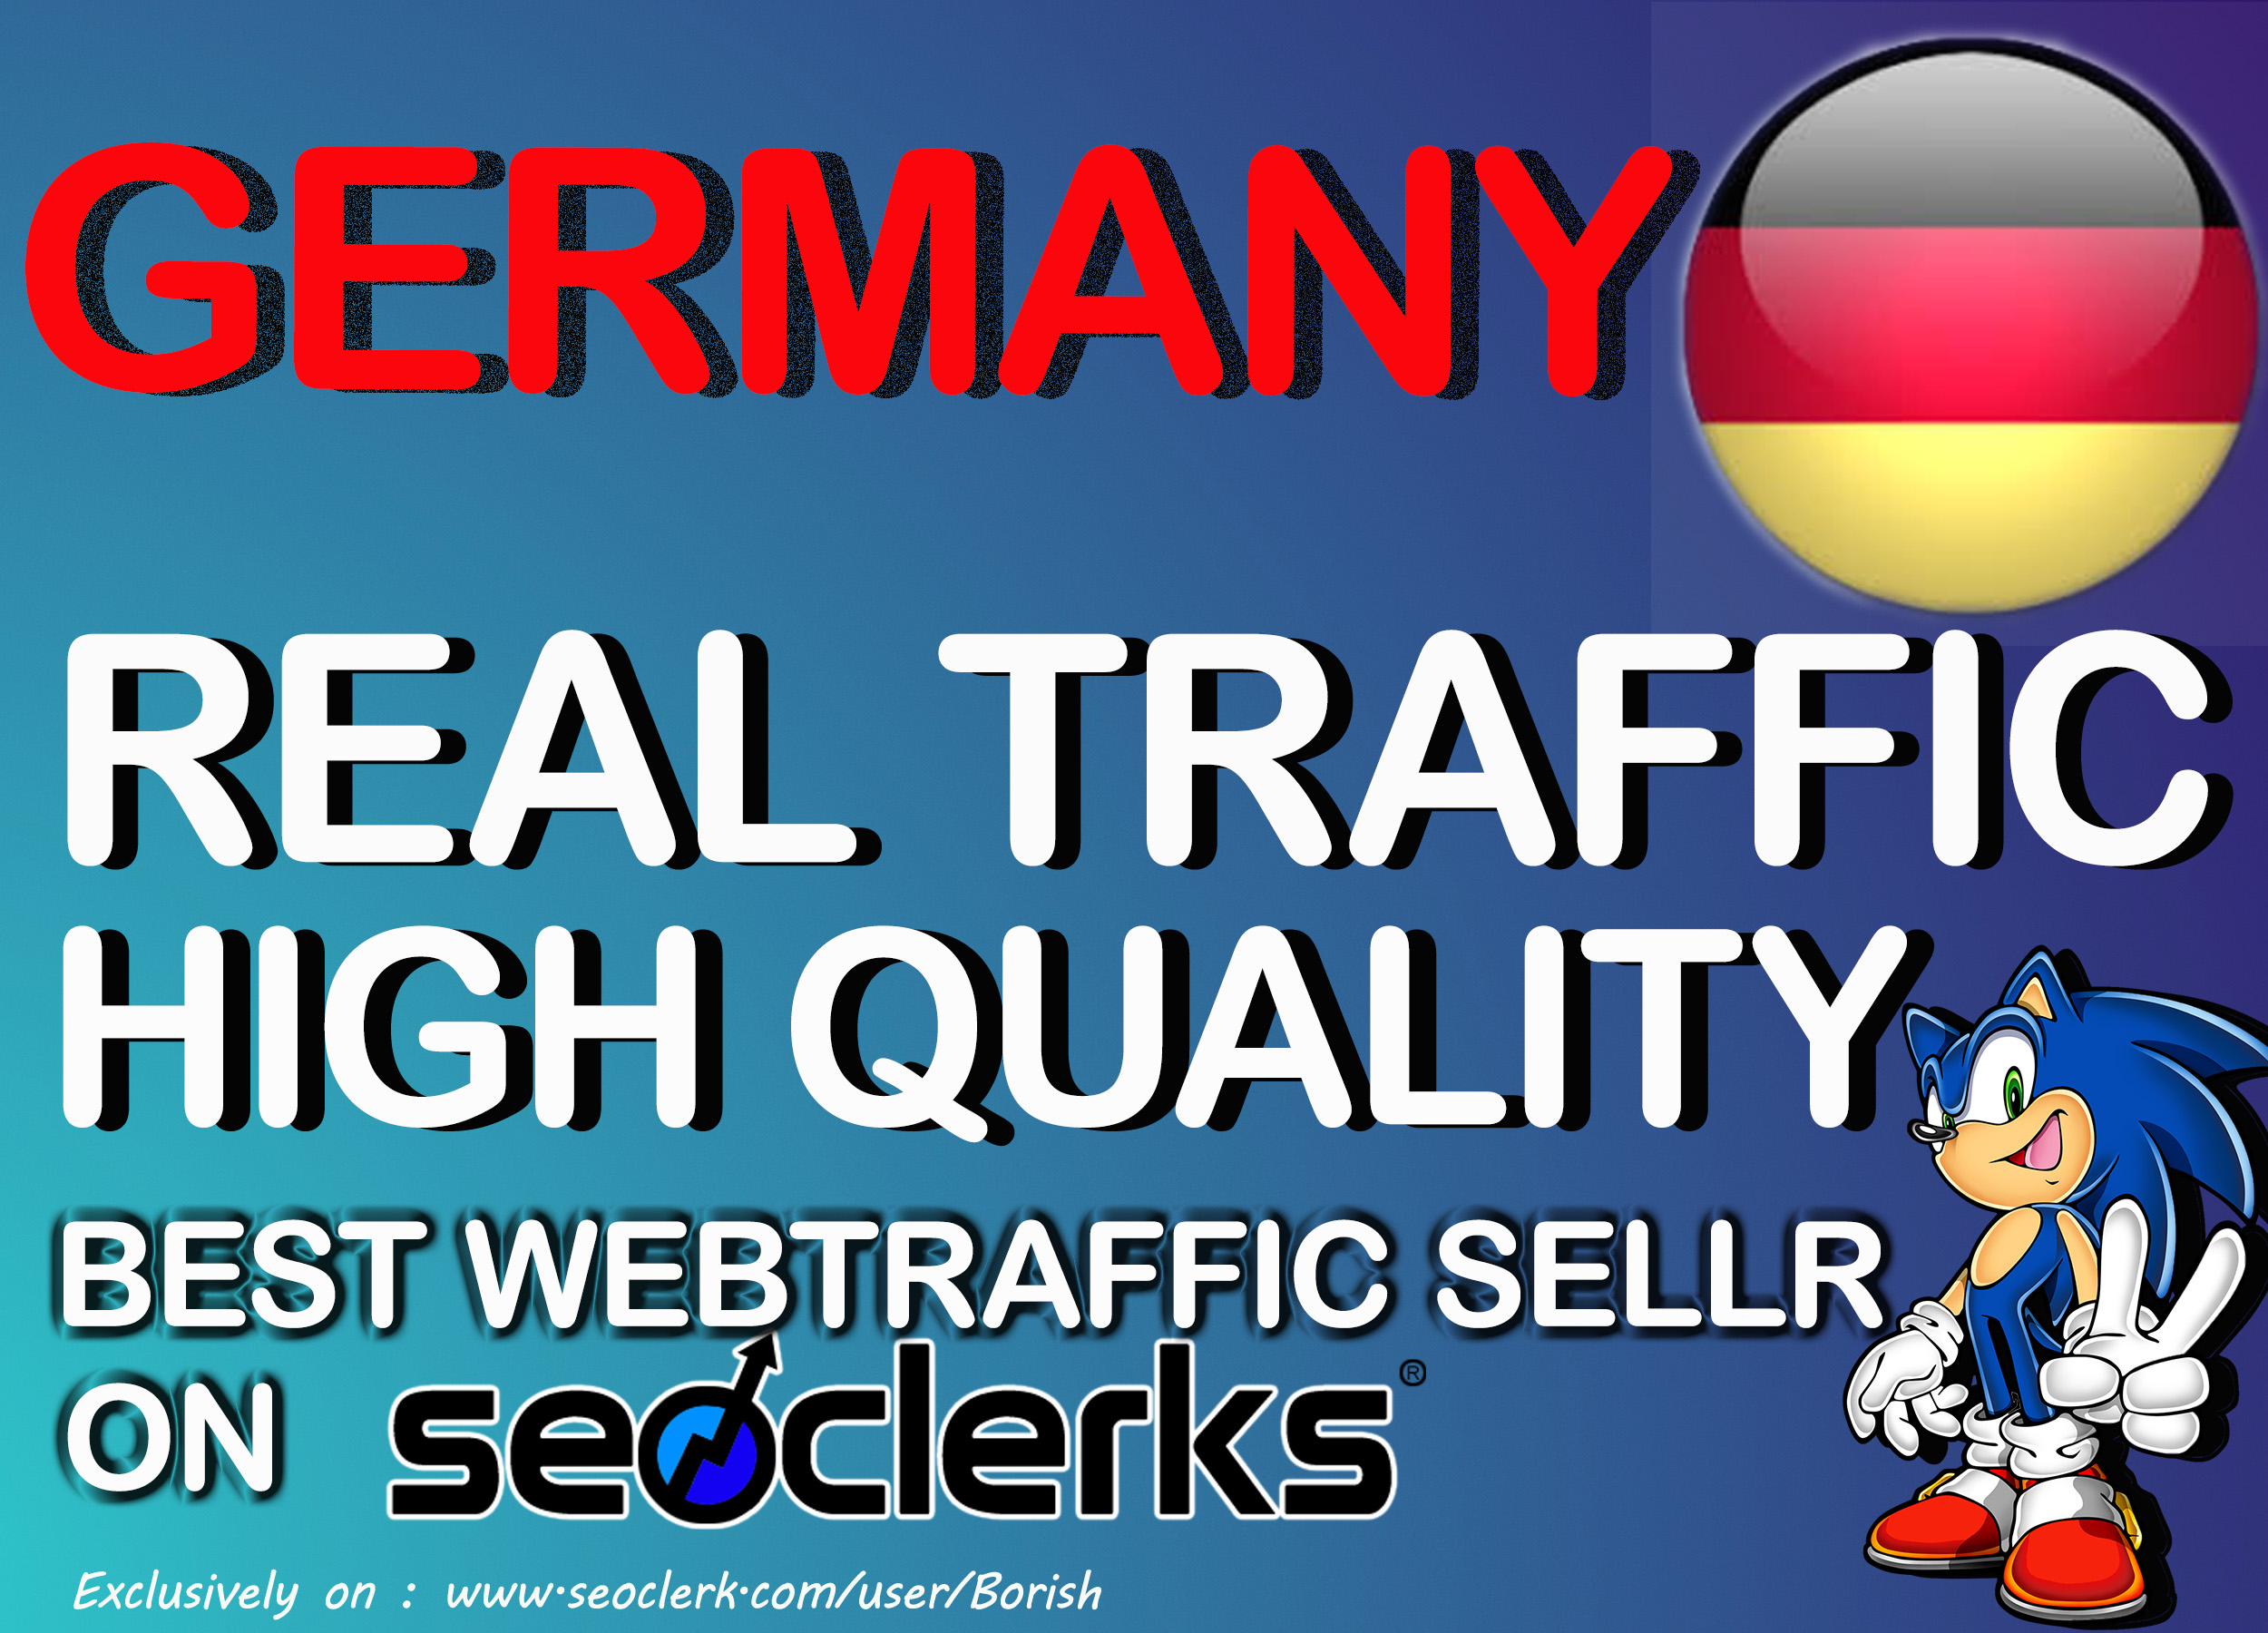 30000 I will send keyword targeted germany traffic with low bounce rate Daily900 - 1000 for 30 days